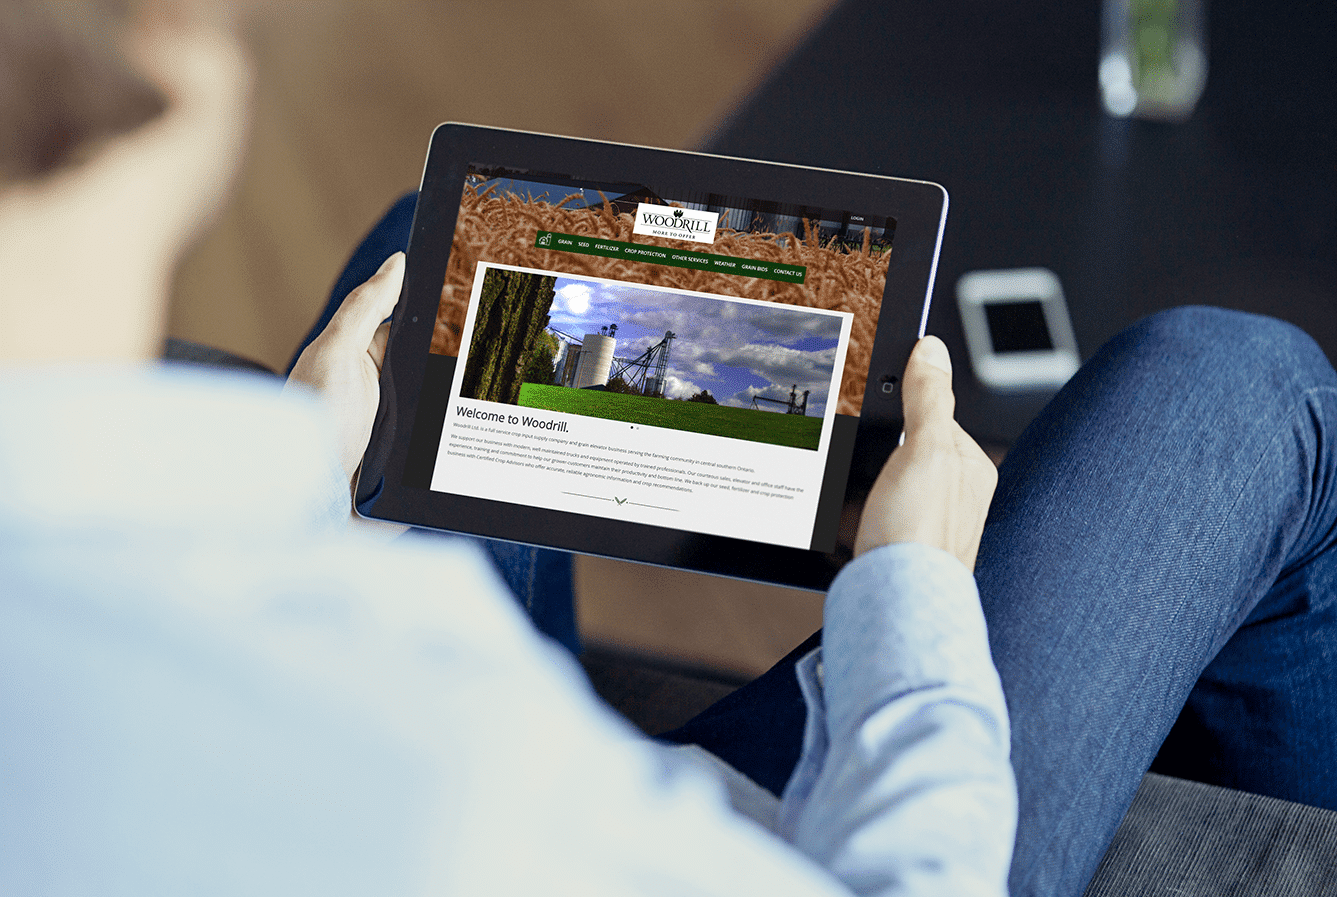 Woodrill farms custom website design services Guelph from Lunarstorm